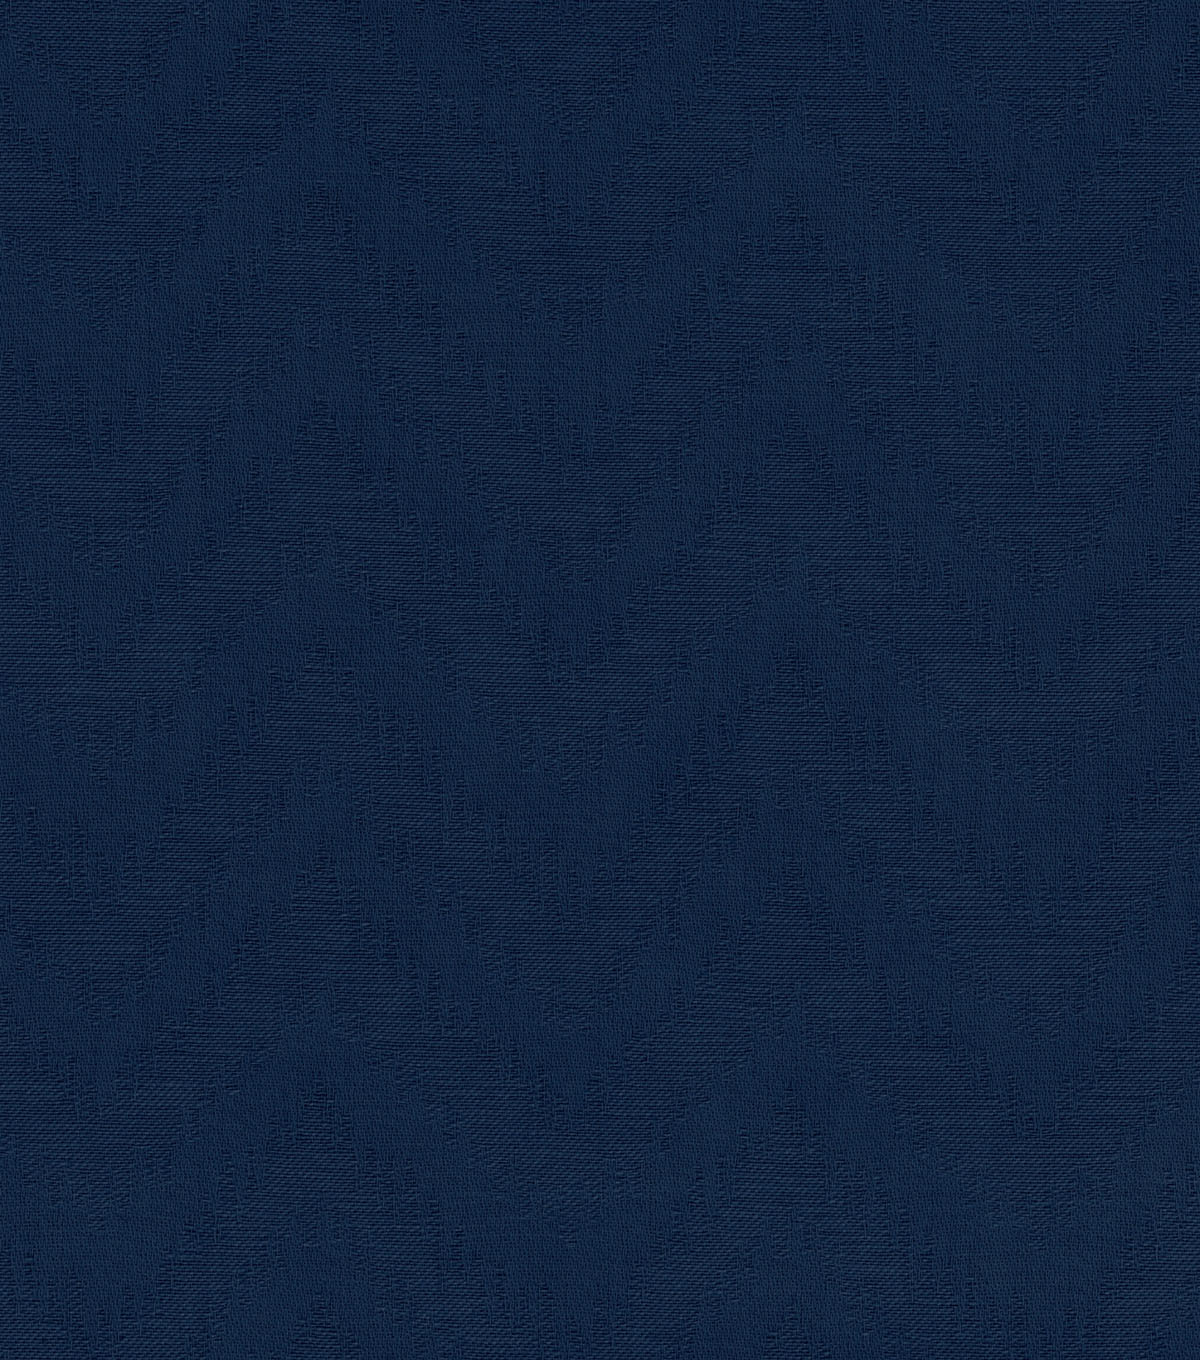 P/K Lifestyles Lightweight Decor Fabric 54\u0022-Peaks Lightweight Decor/Navy